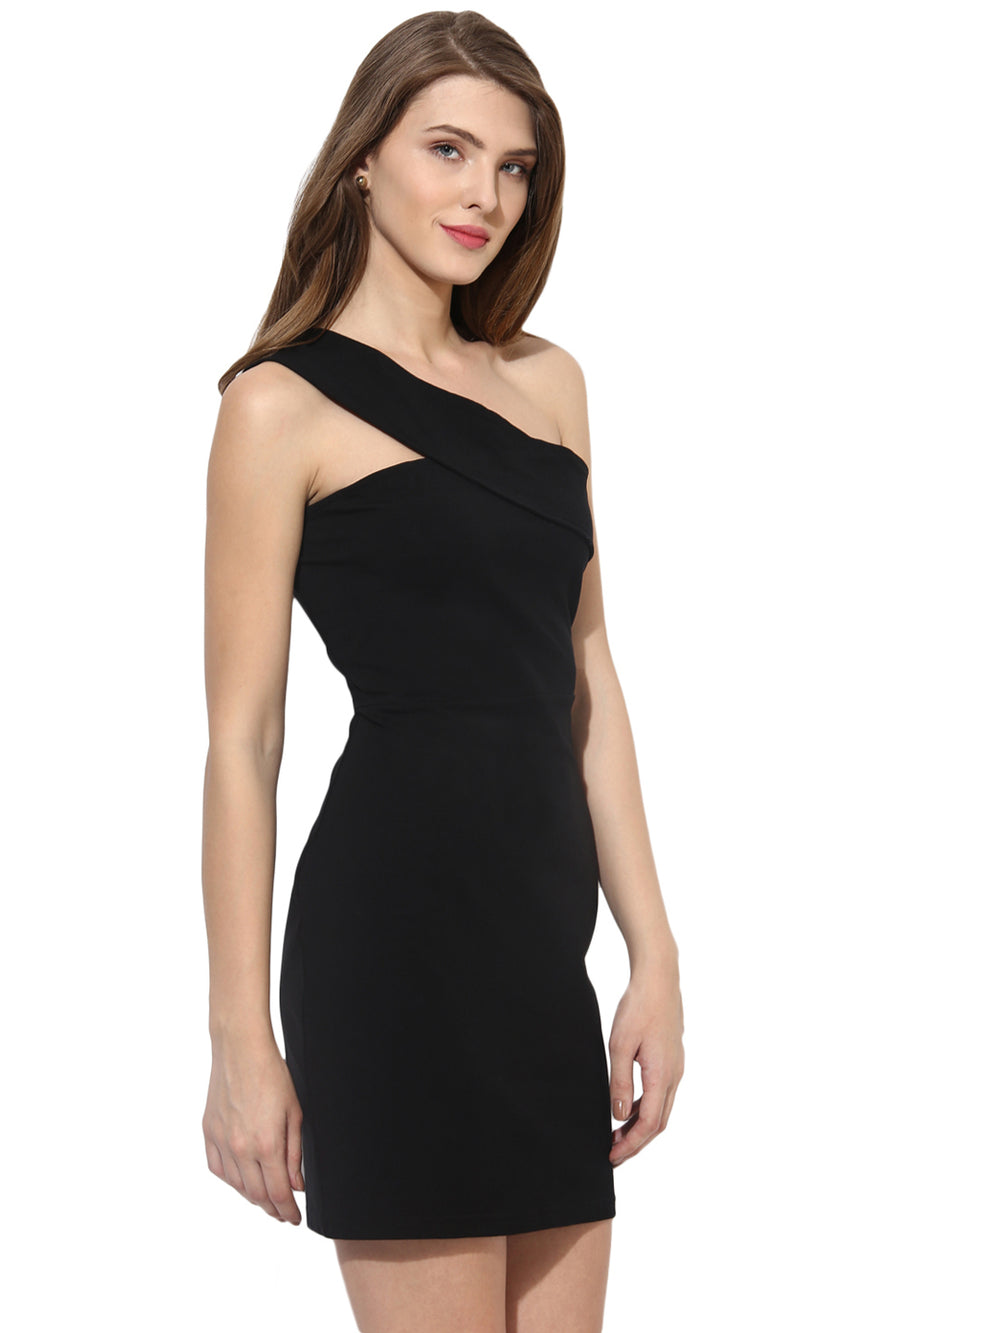 Besiva Women Black Solid One-Shoulder Sheath Dress